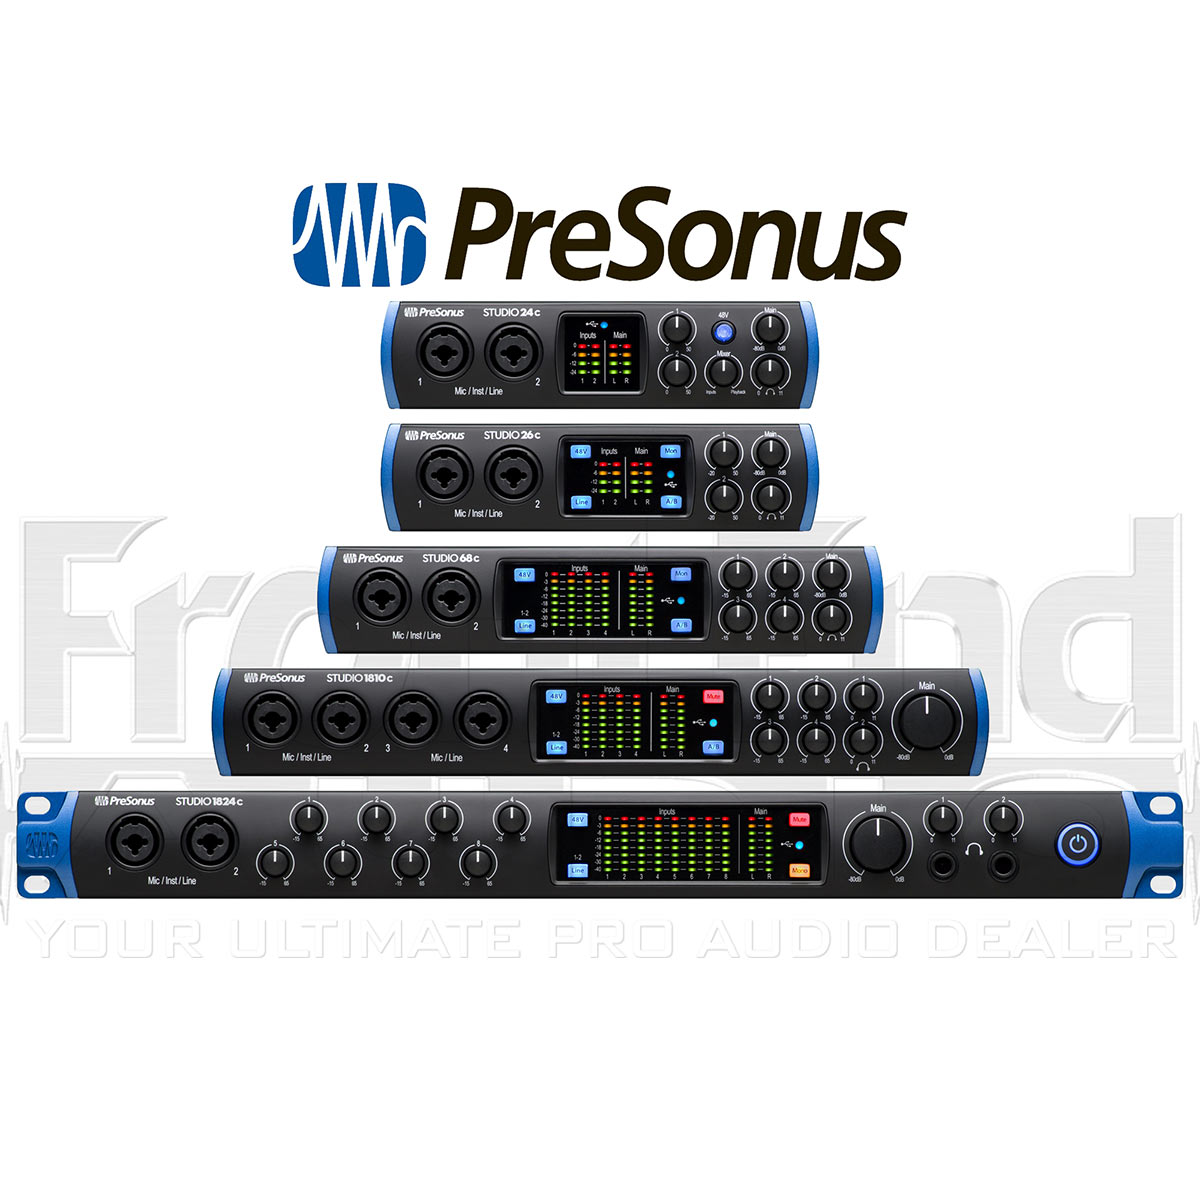 Presonus' new USB-C interfaces